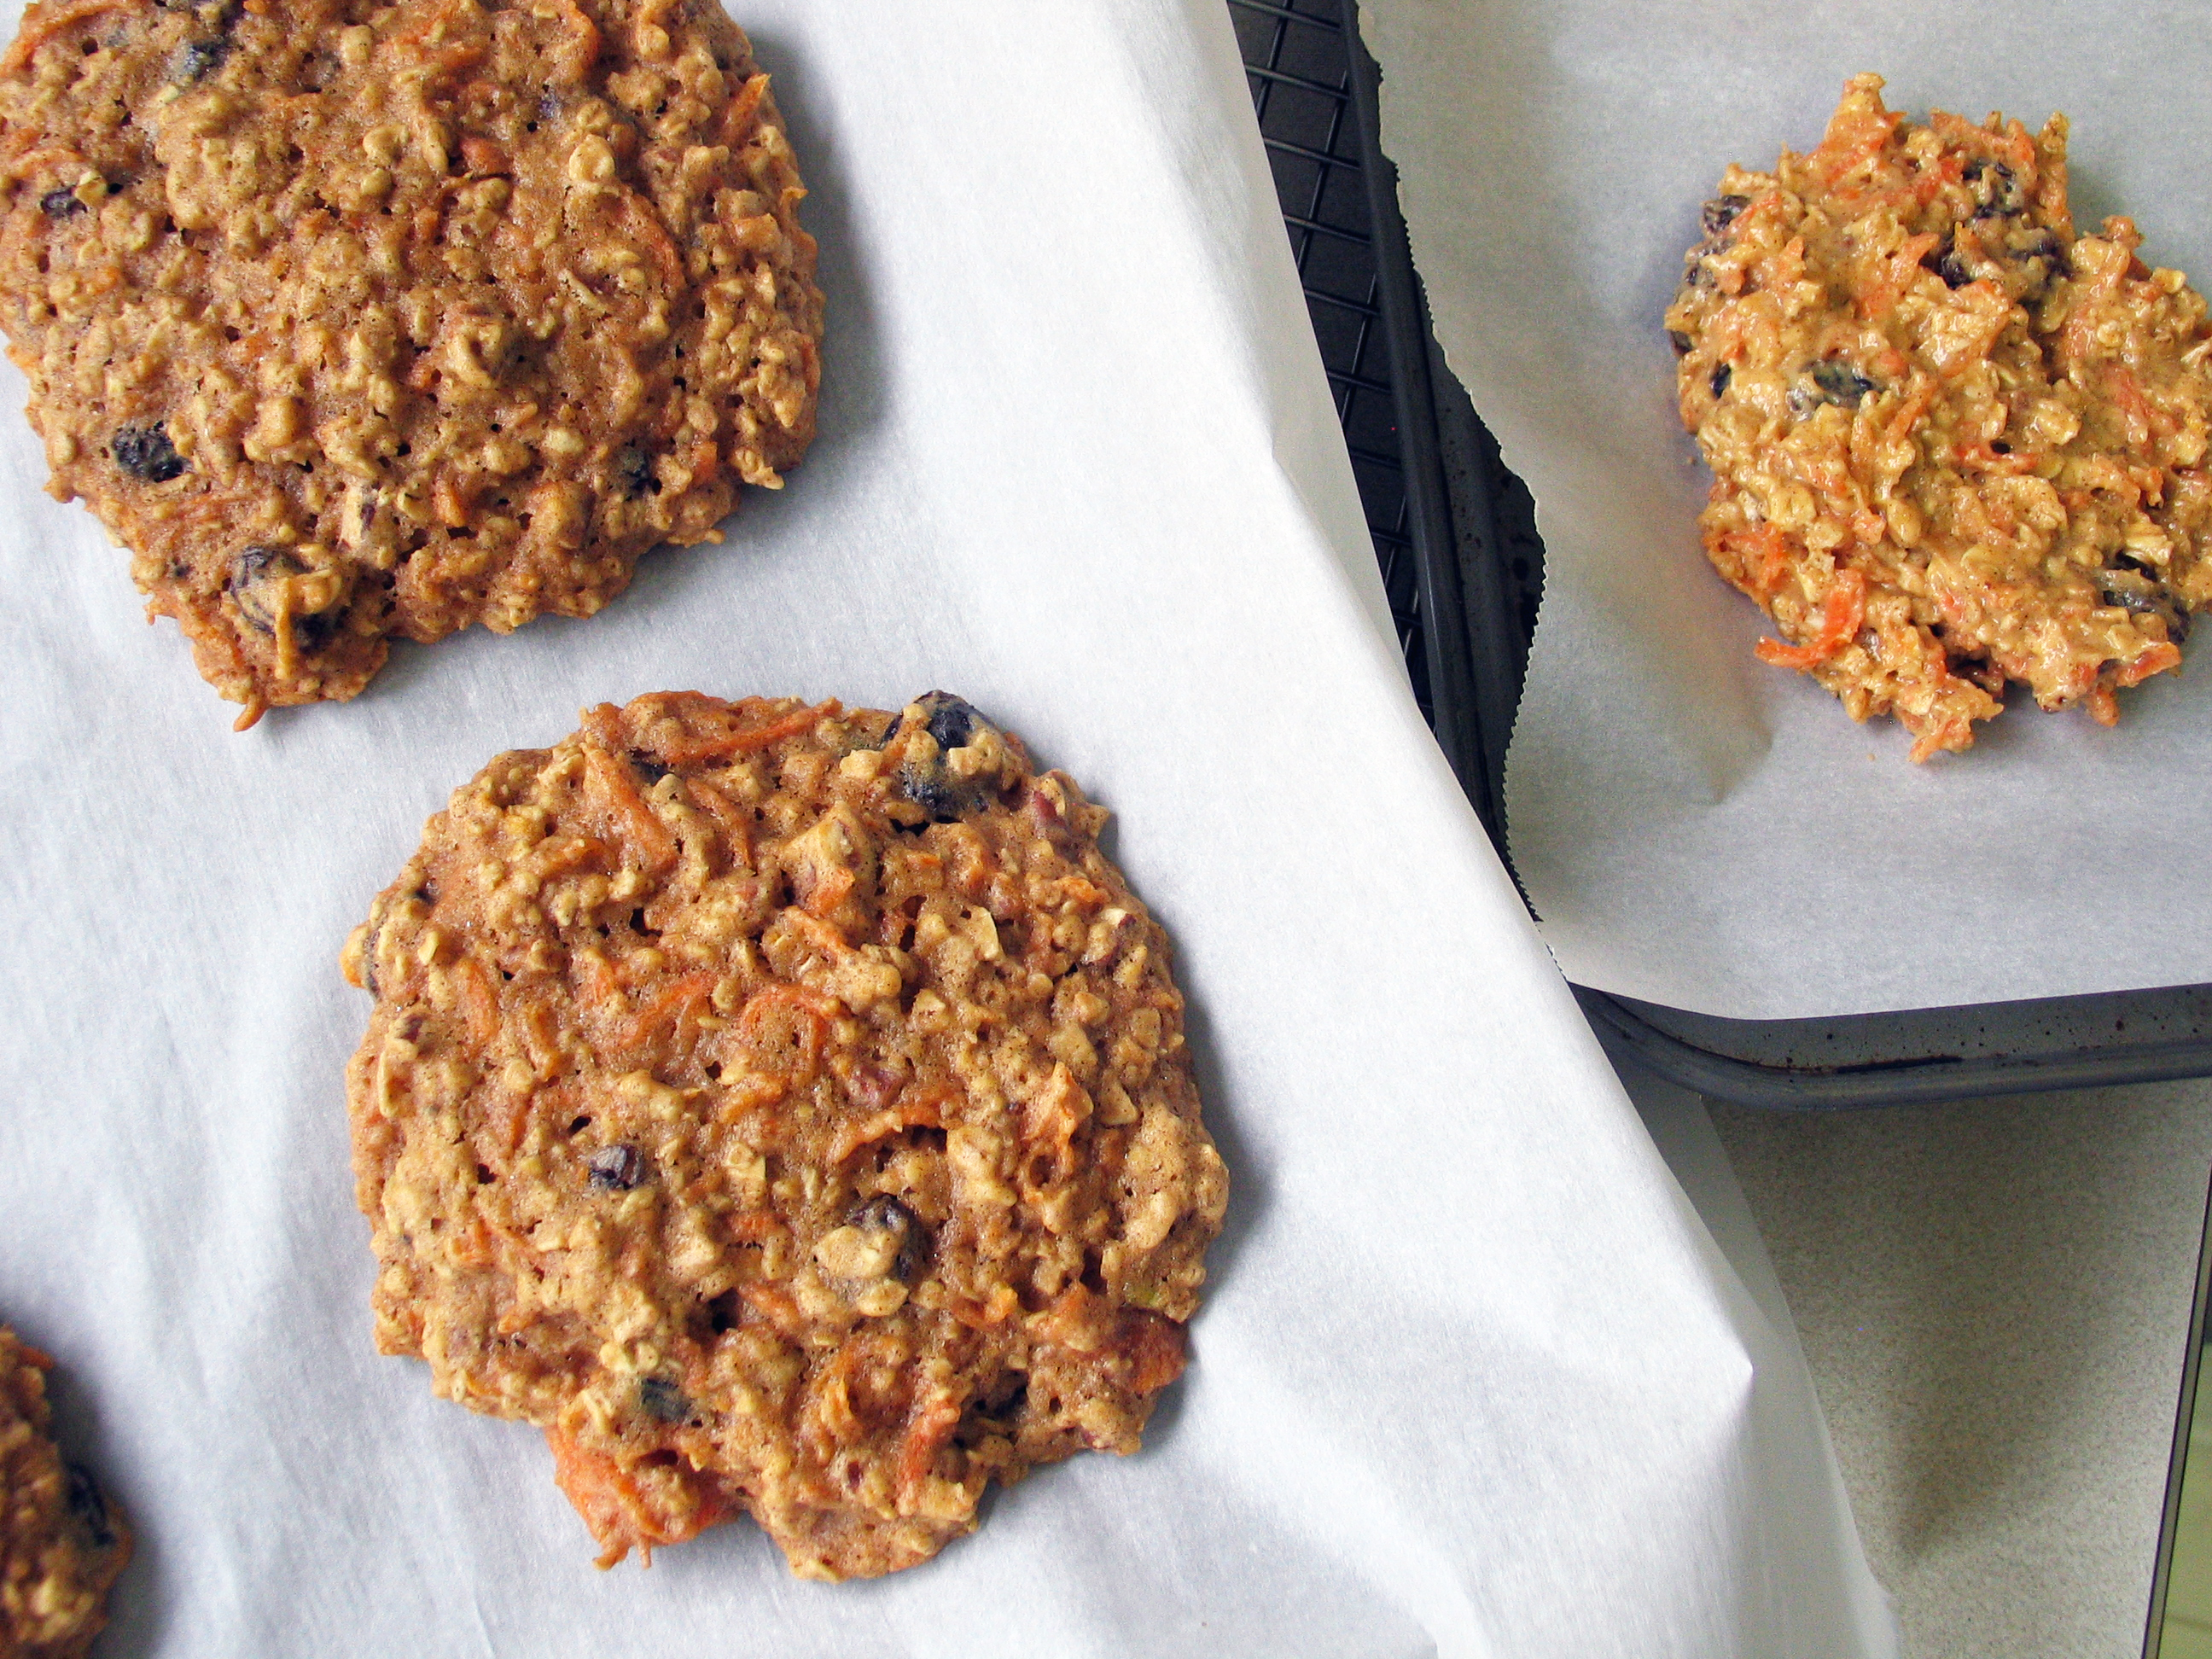 Carrot and Honey Oatmeal Cookies